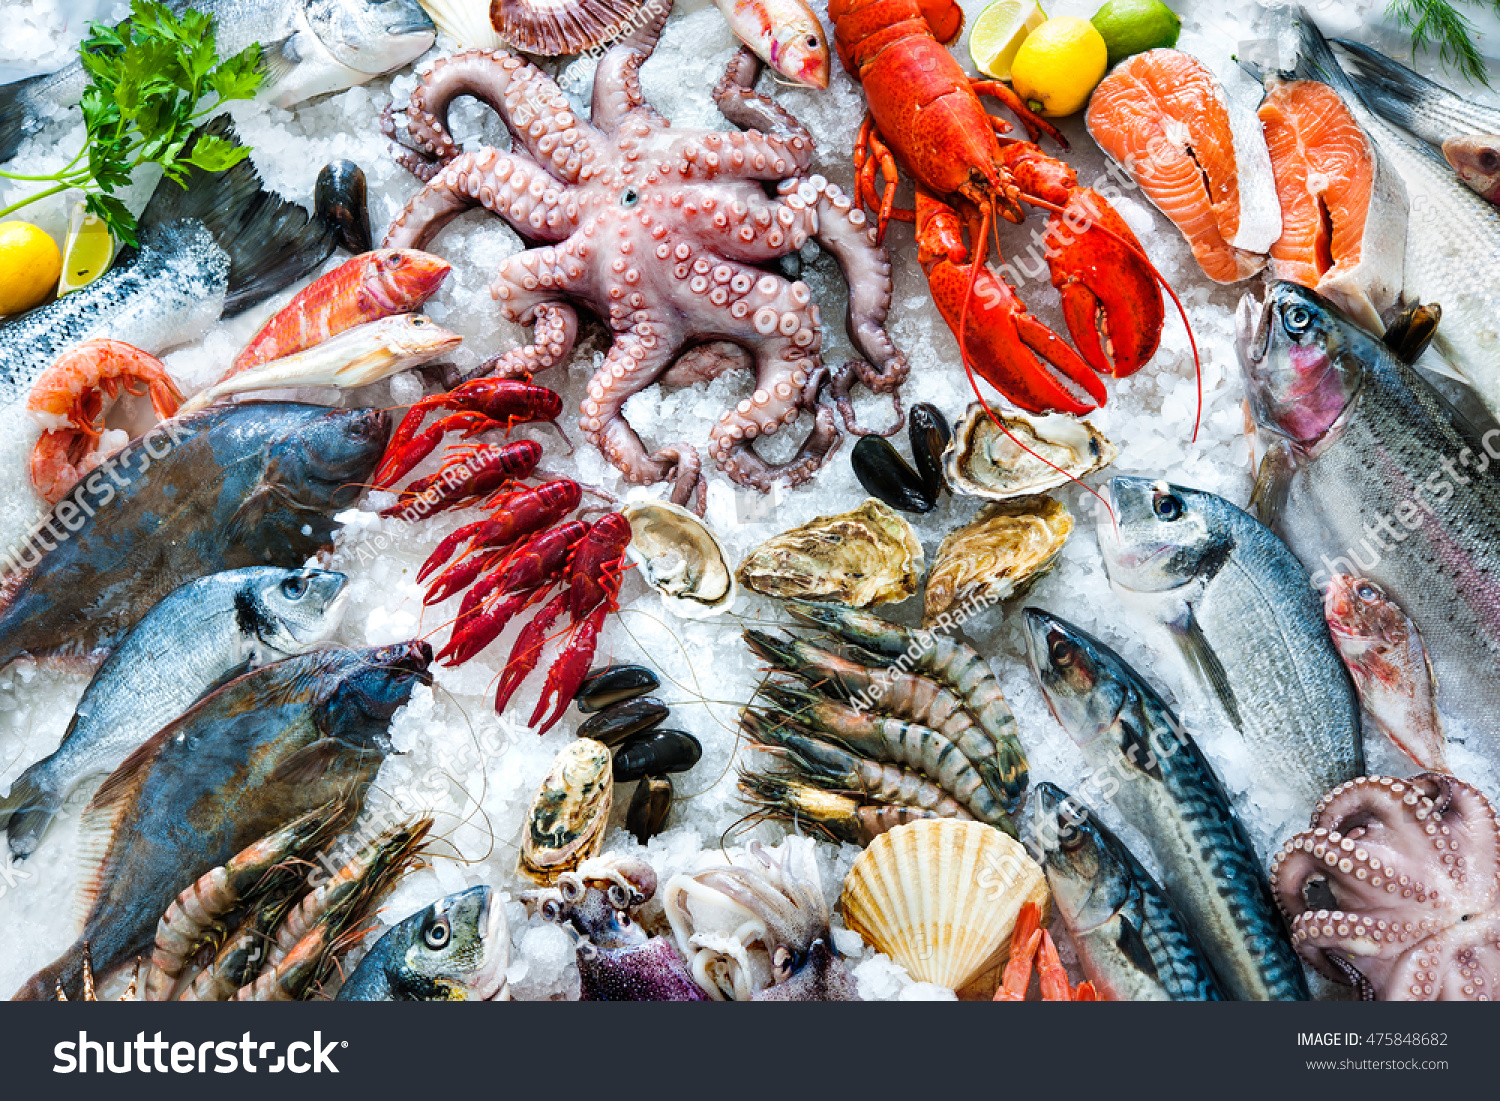 Seafood on ice fish market stock photo 475848682 for City fish market menu